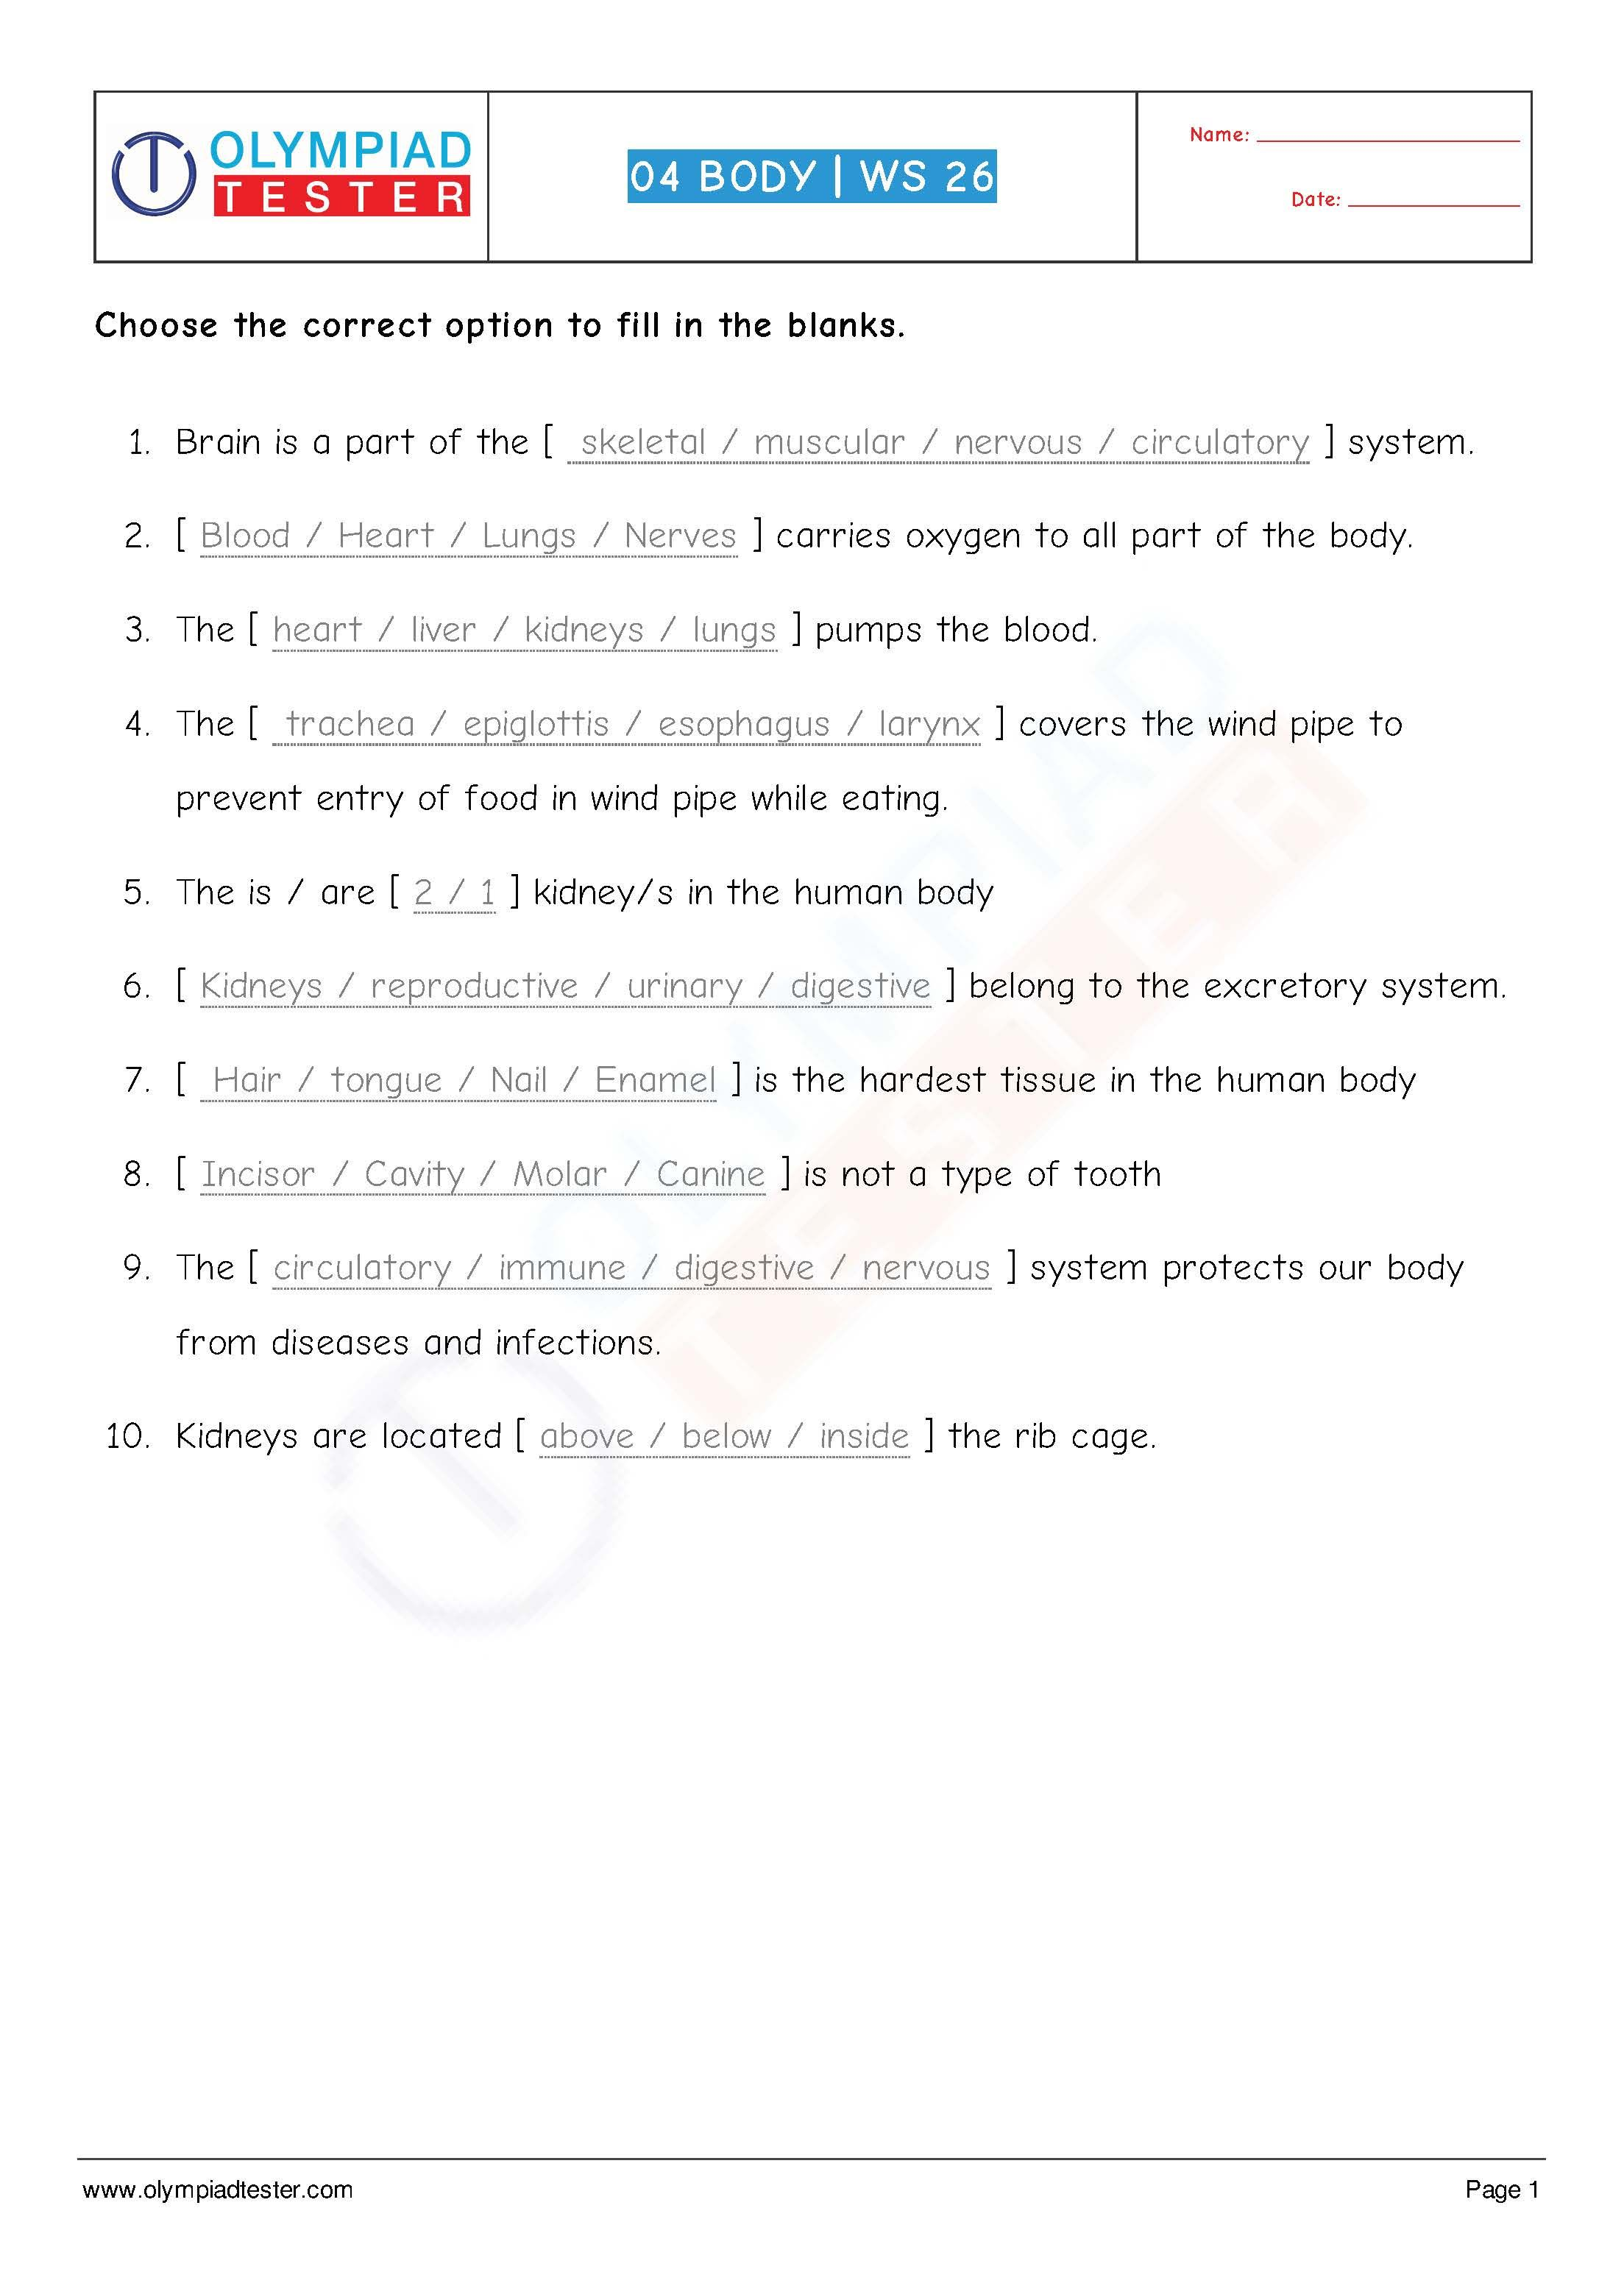 Human Body Worksheet 26 Class 4 Download This Science Sample